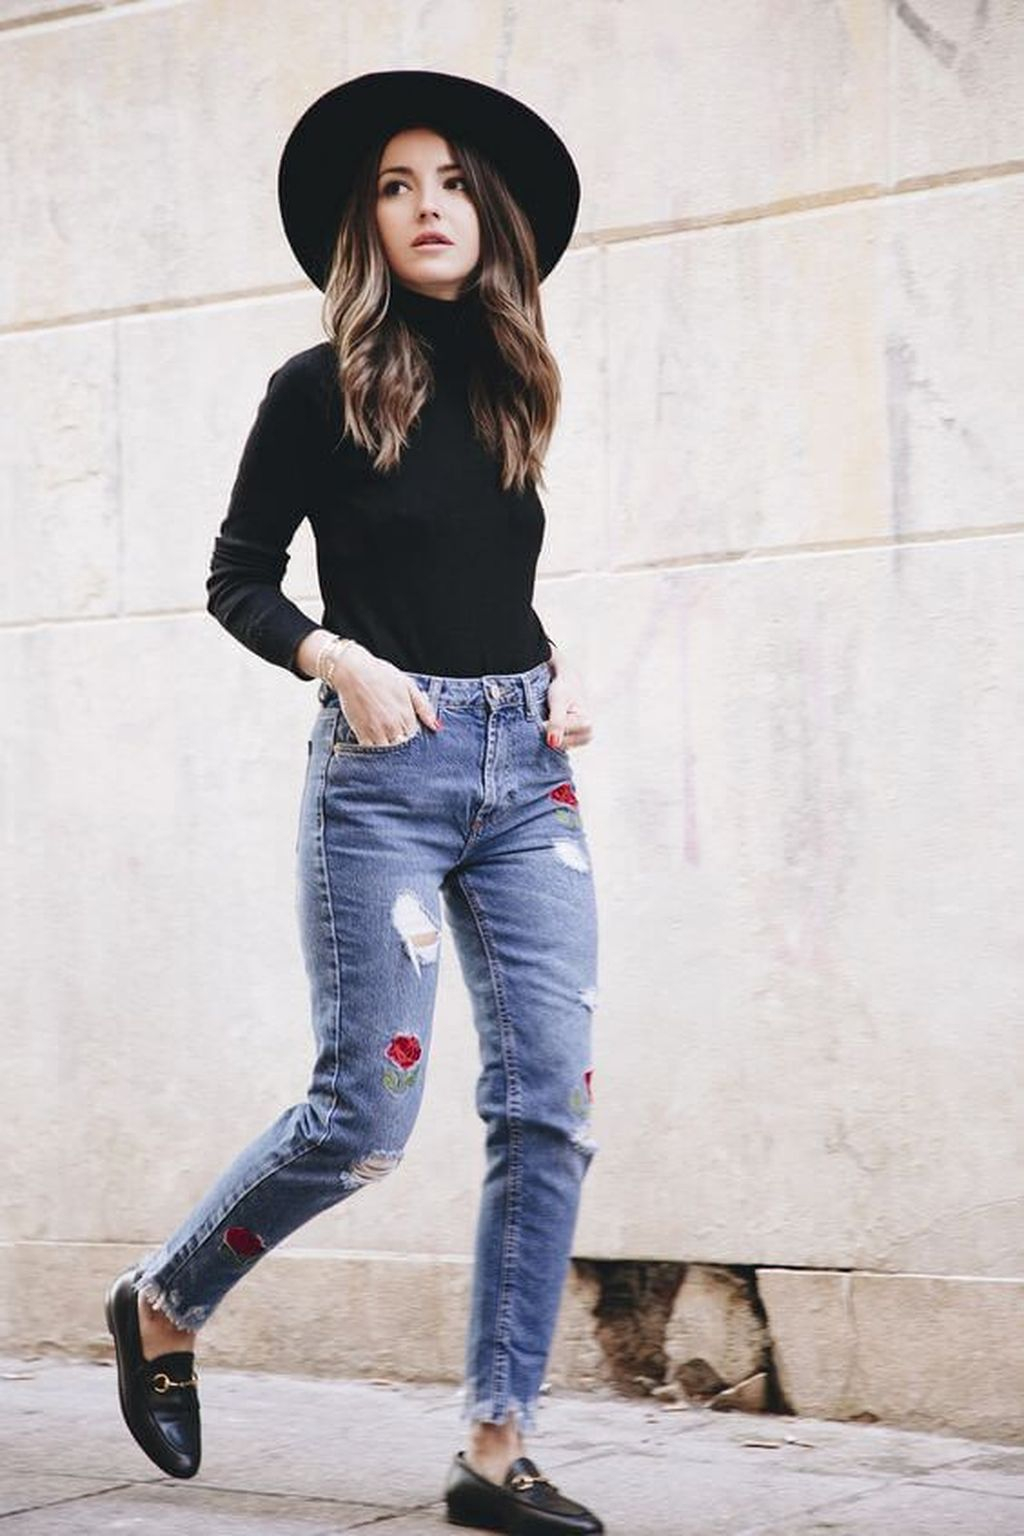 How to Dress to Impress When Traveling the World - Source Arta Facts - travel outfit ideas - best jeans for traveling - black turtle necks